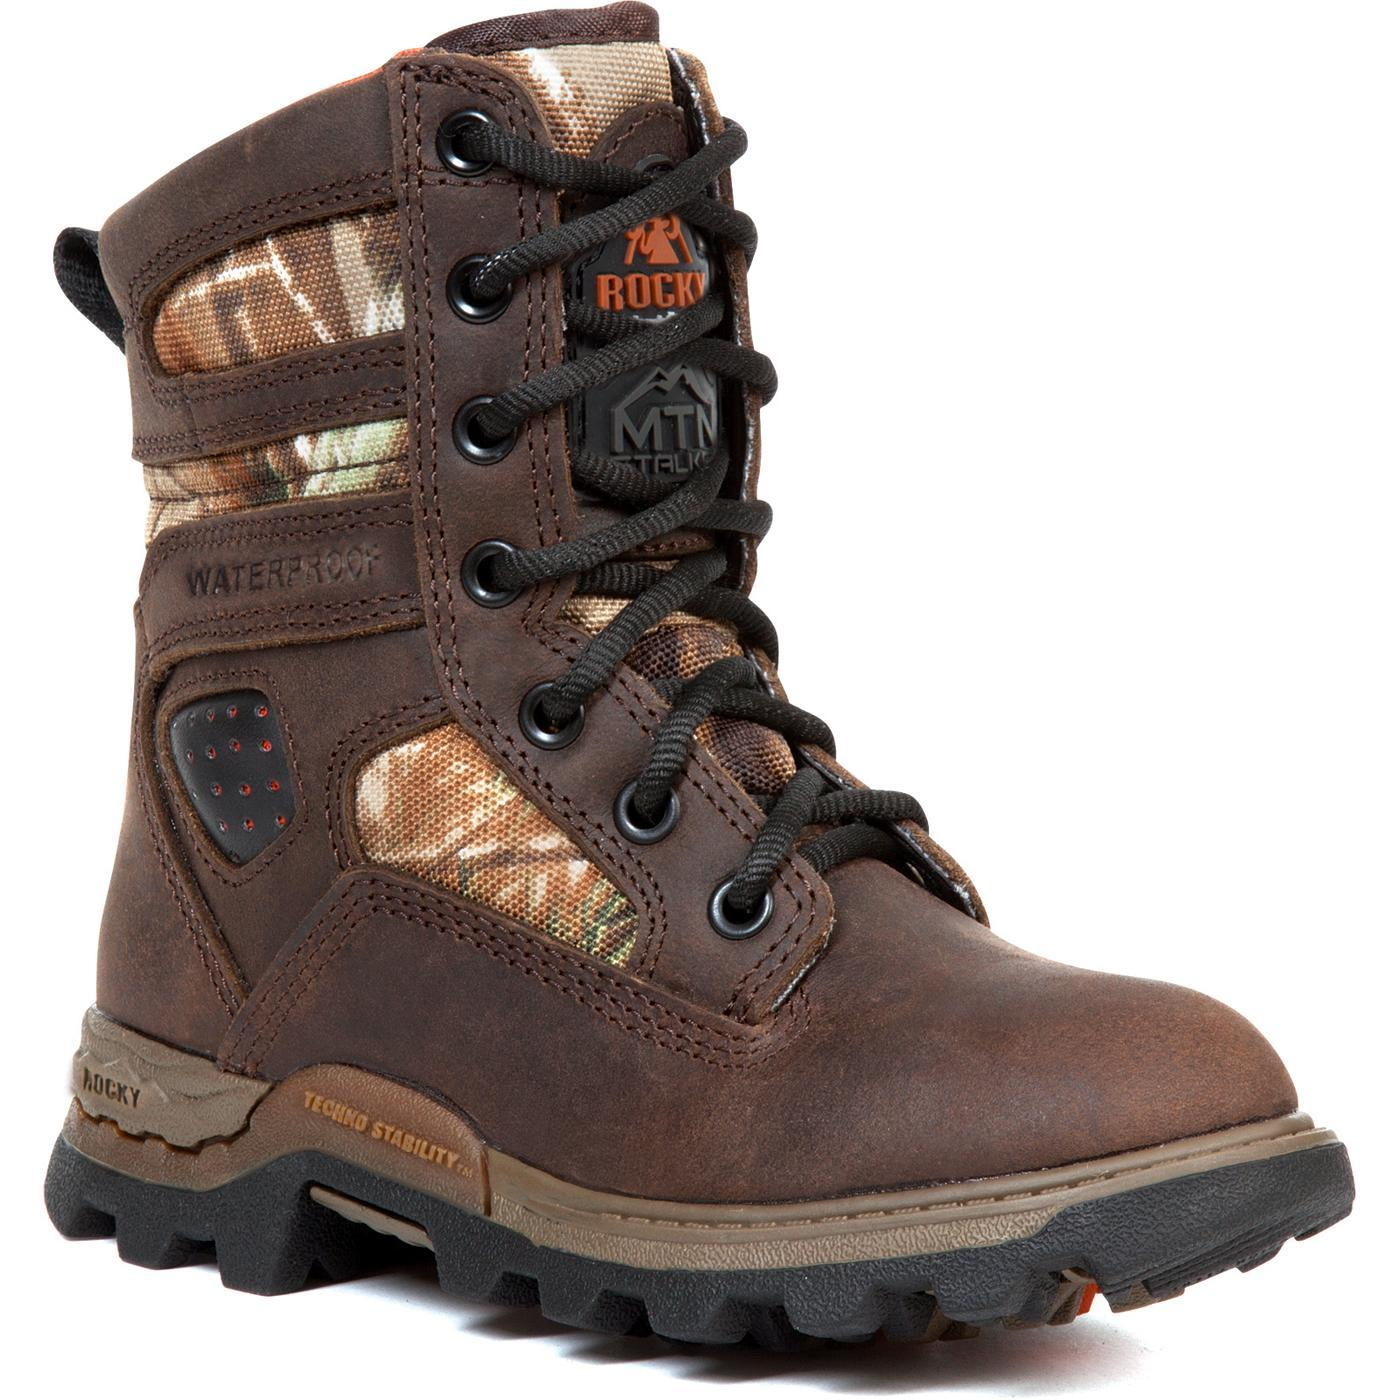 Rocky Kid's Mountain Stalker Waterproof Insulated Boot -Style #3684